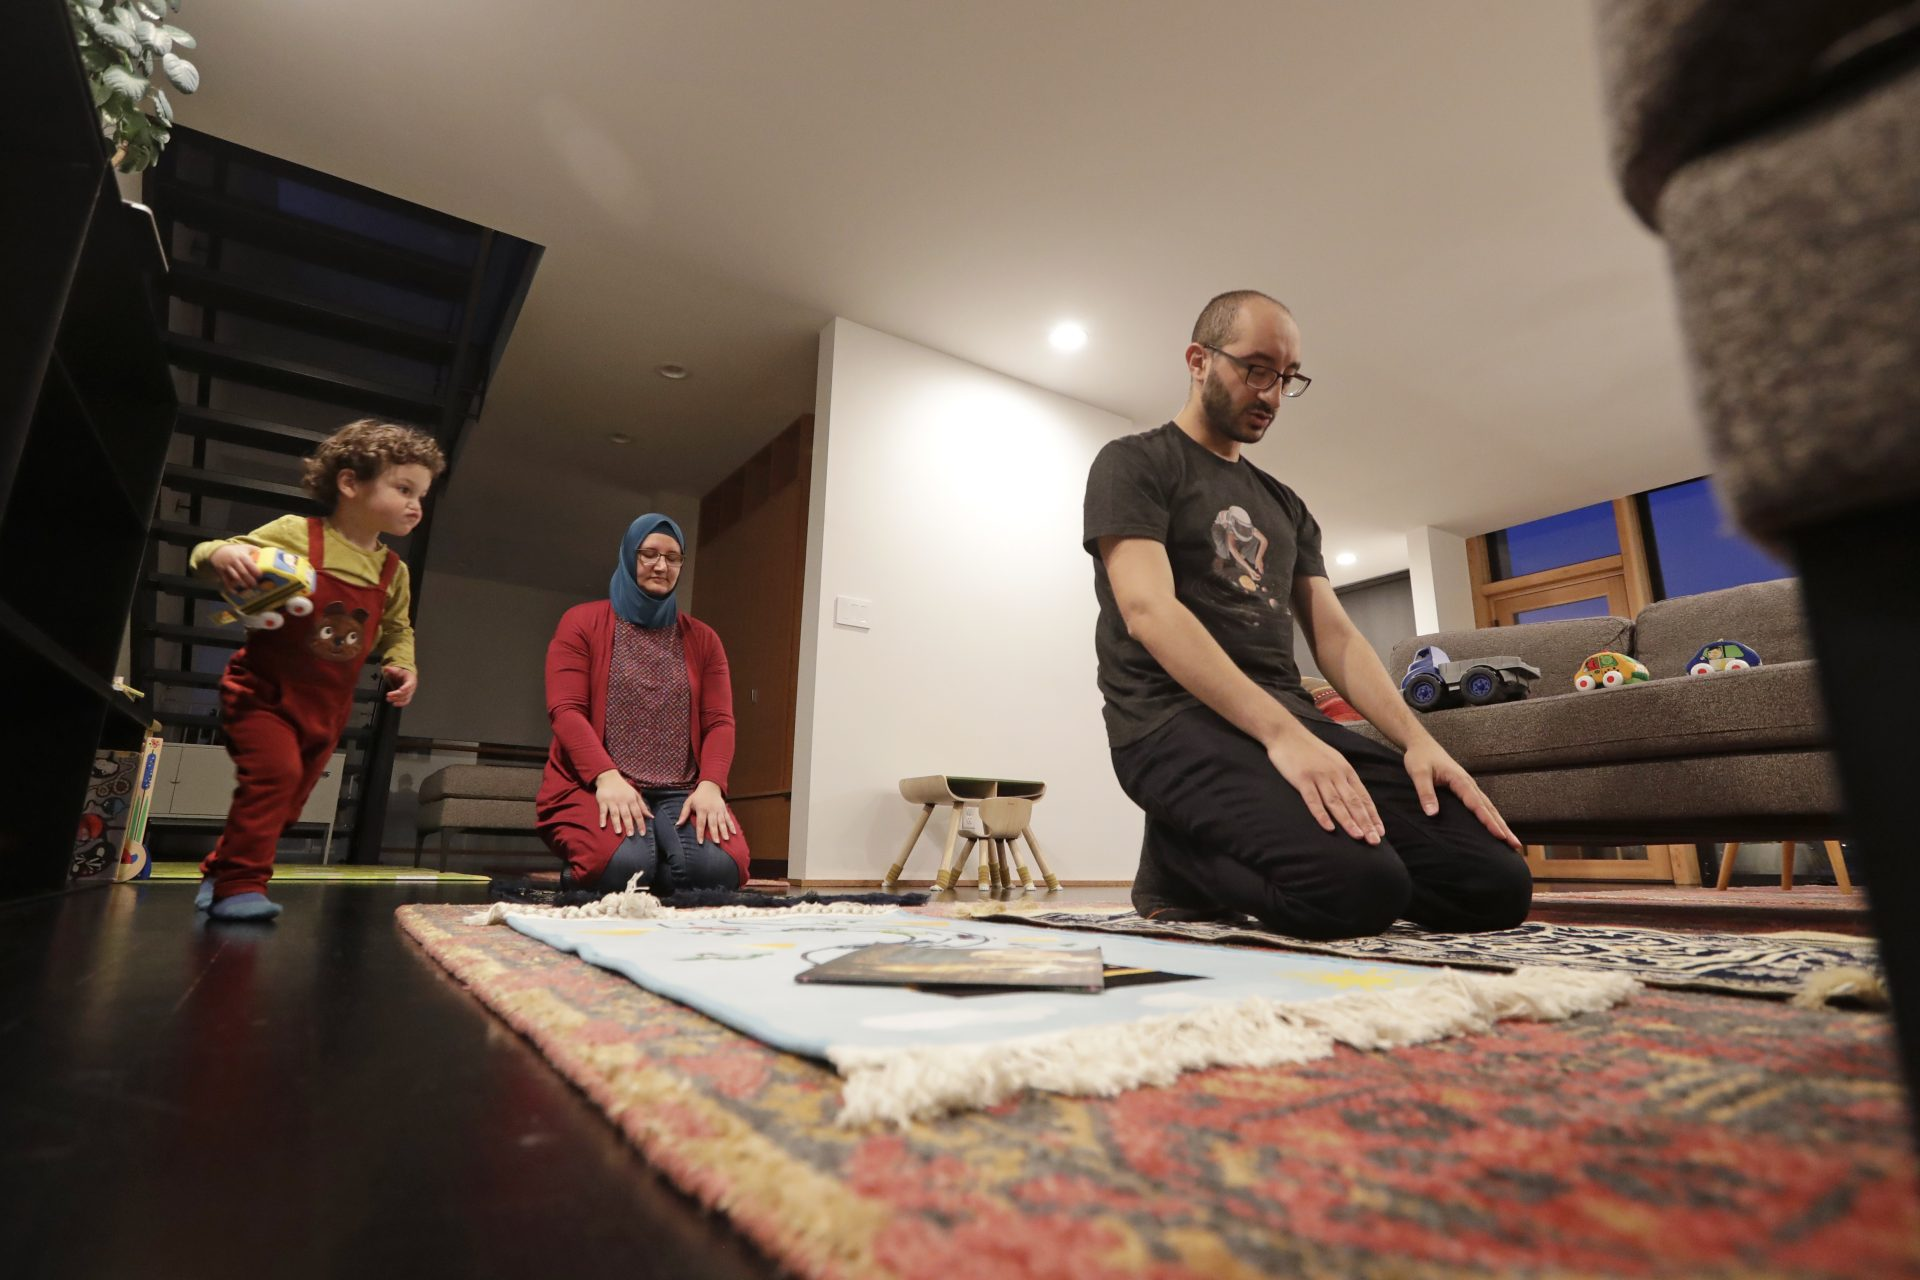 In this Tuesday, April 28, 2020 file photo, Ahmad Kamel, right, performs the Maghrib prayer with his wife, Nadia Chaouch, as their son Ahmad Kamel runs past after the family broke the Ramadan daily fast just after sunset in their home, during the coronavirus outbreak in Seattle.